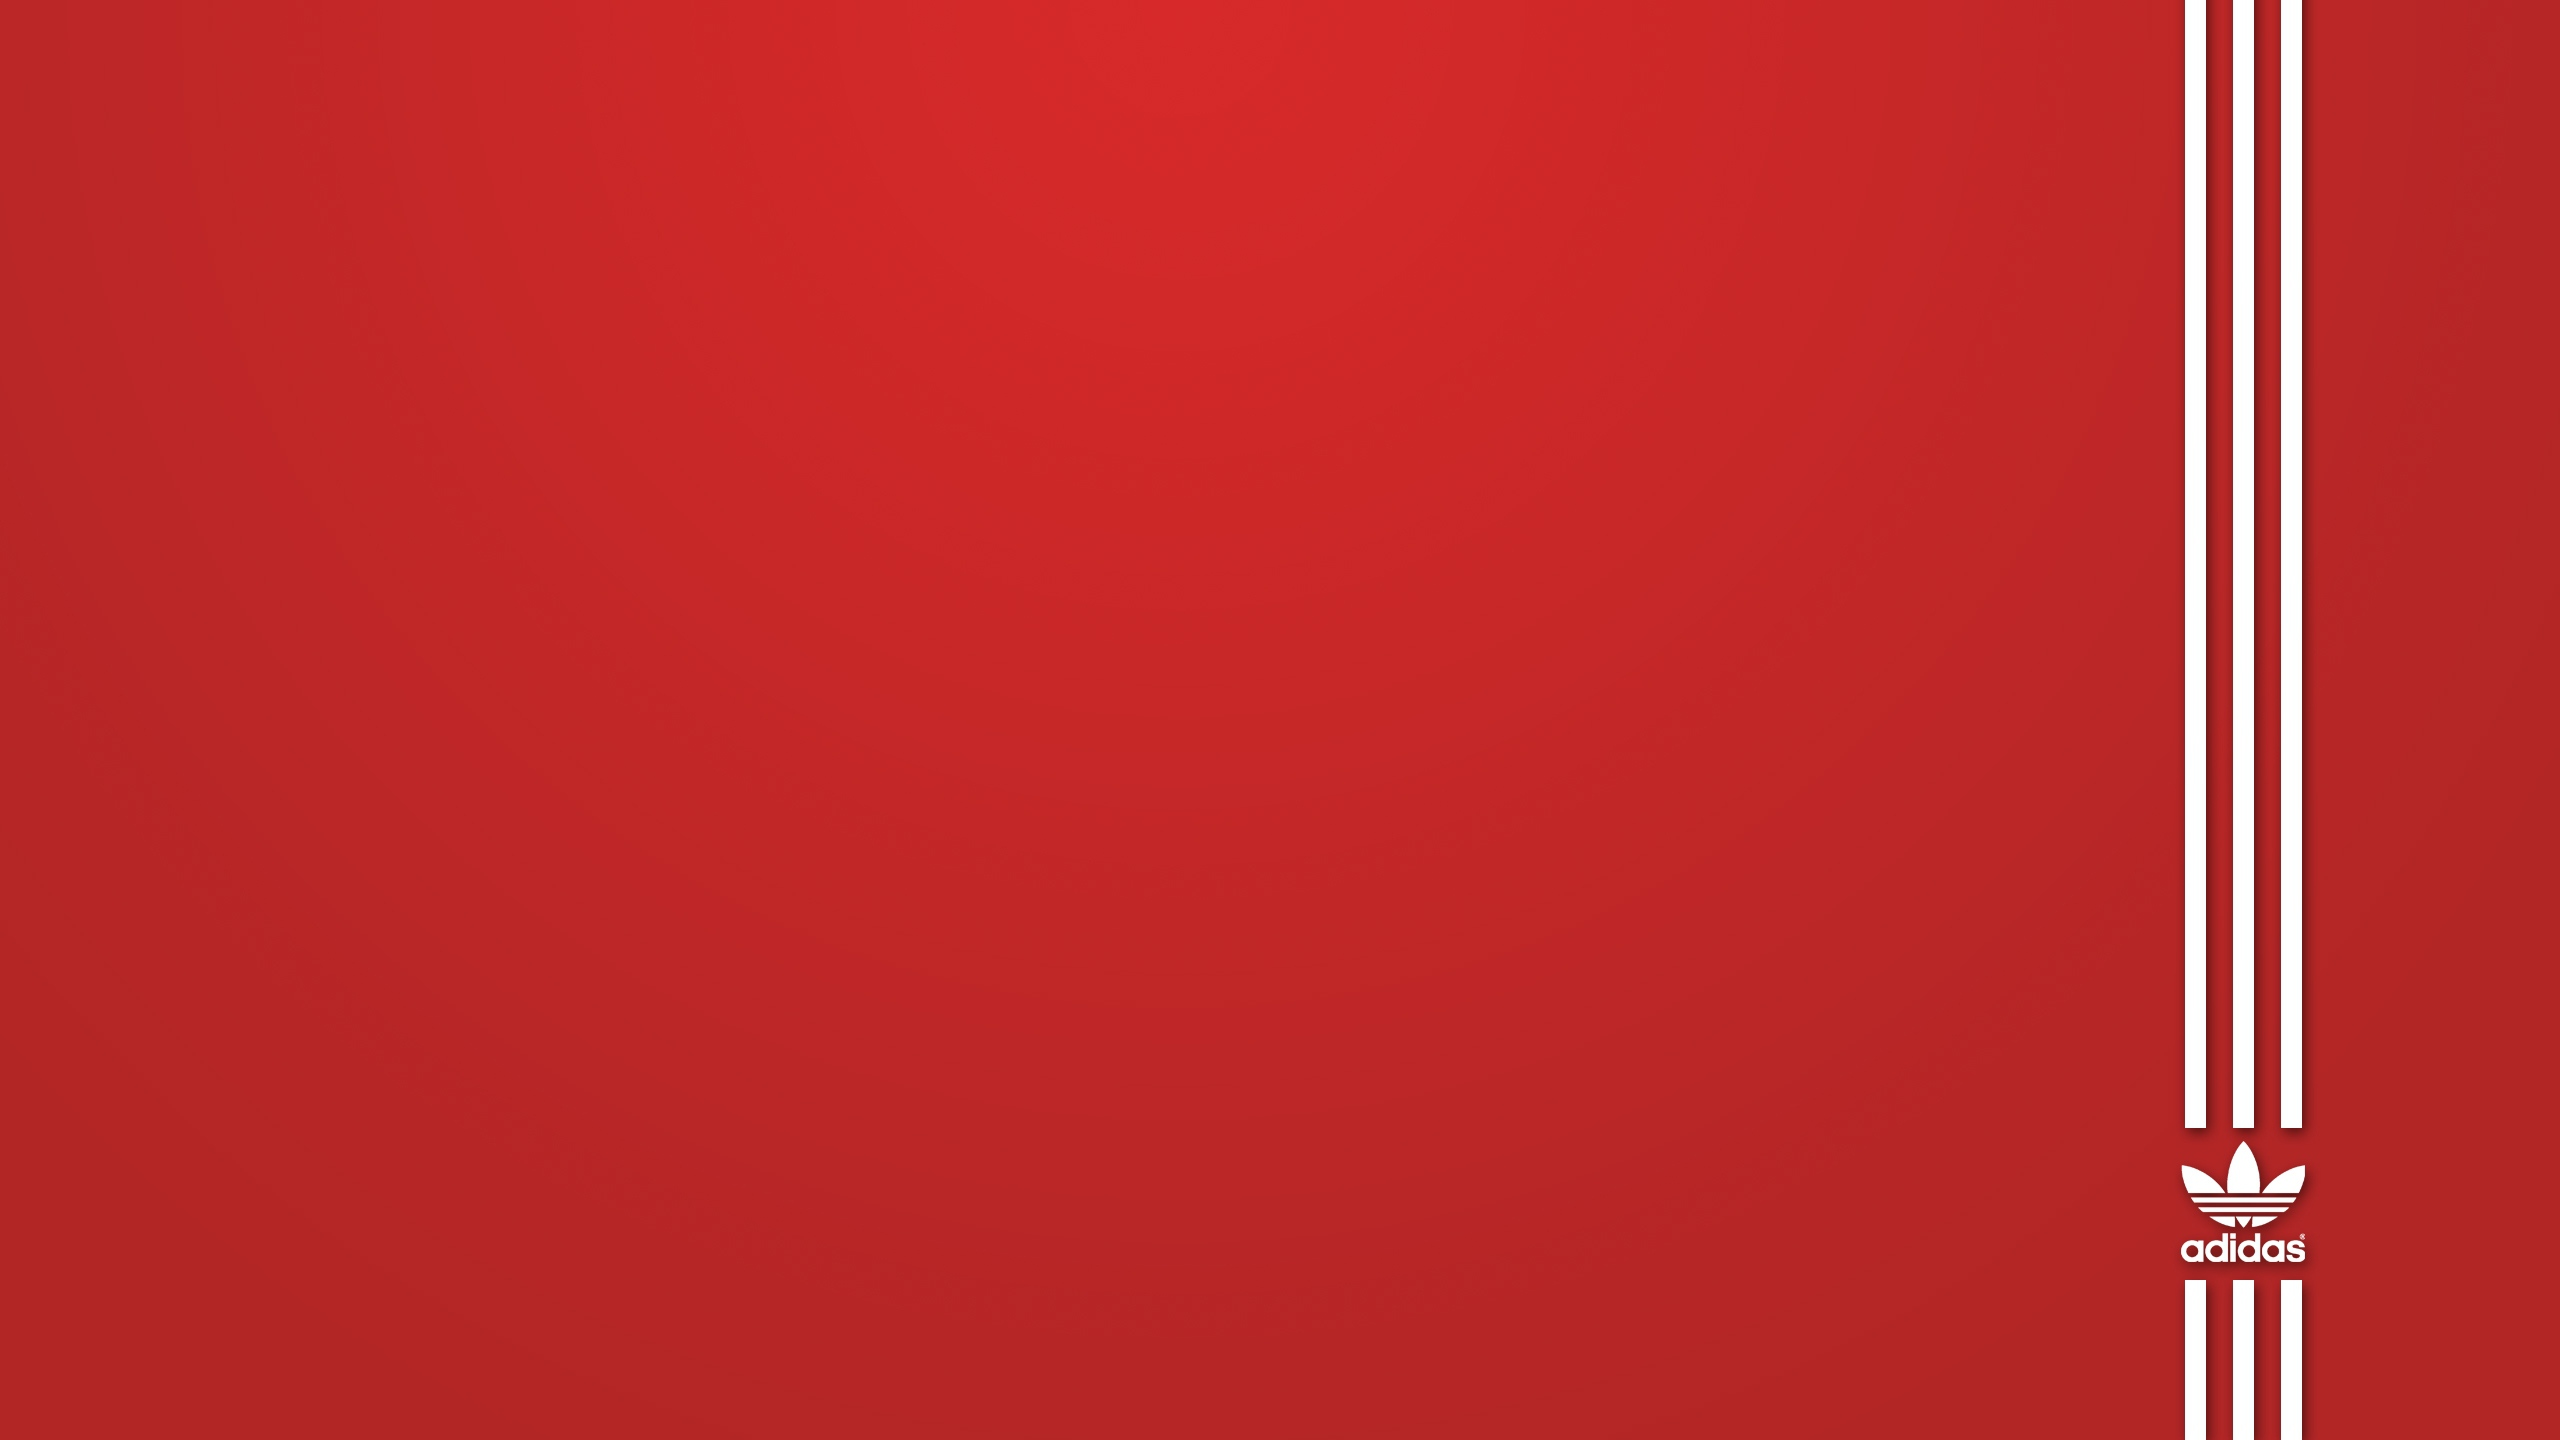 Red Background Vectors Photos and PSD files  Freepik